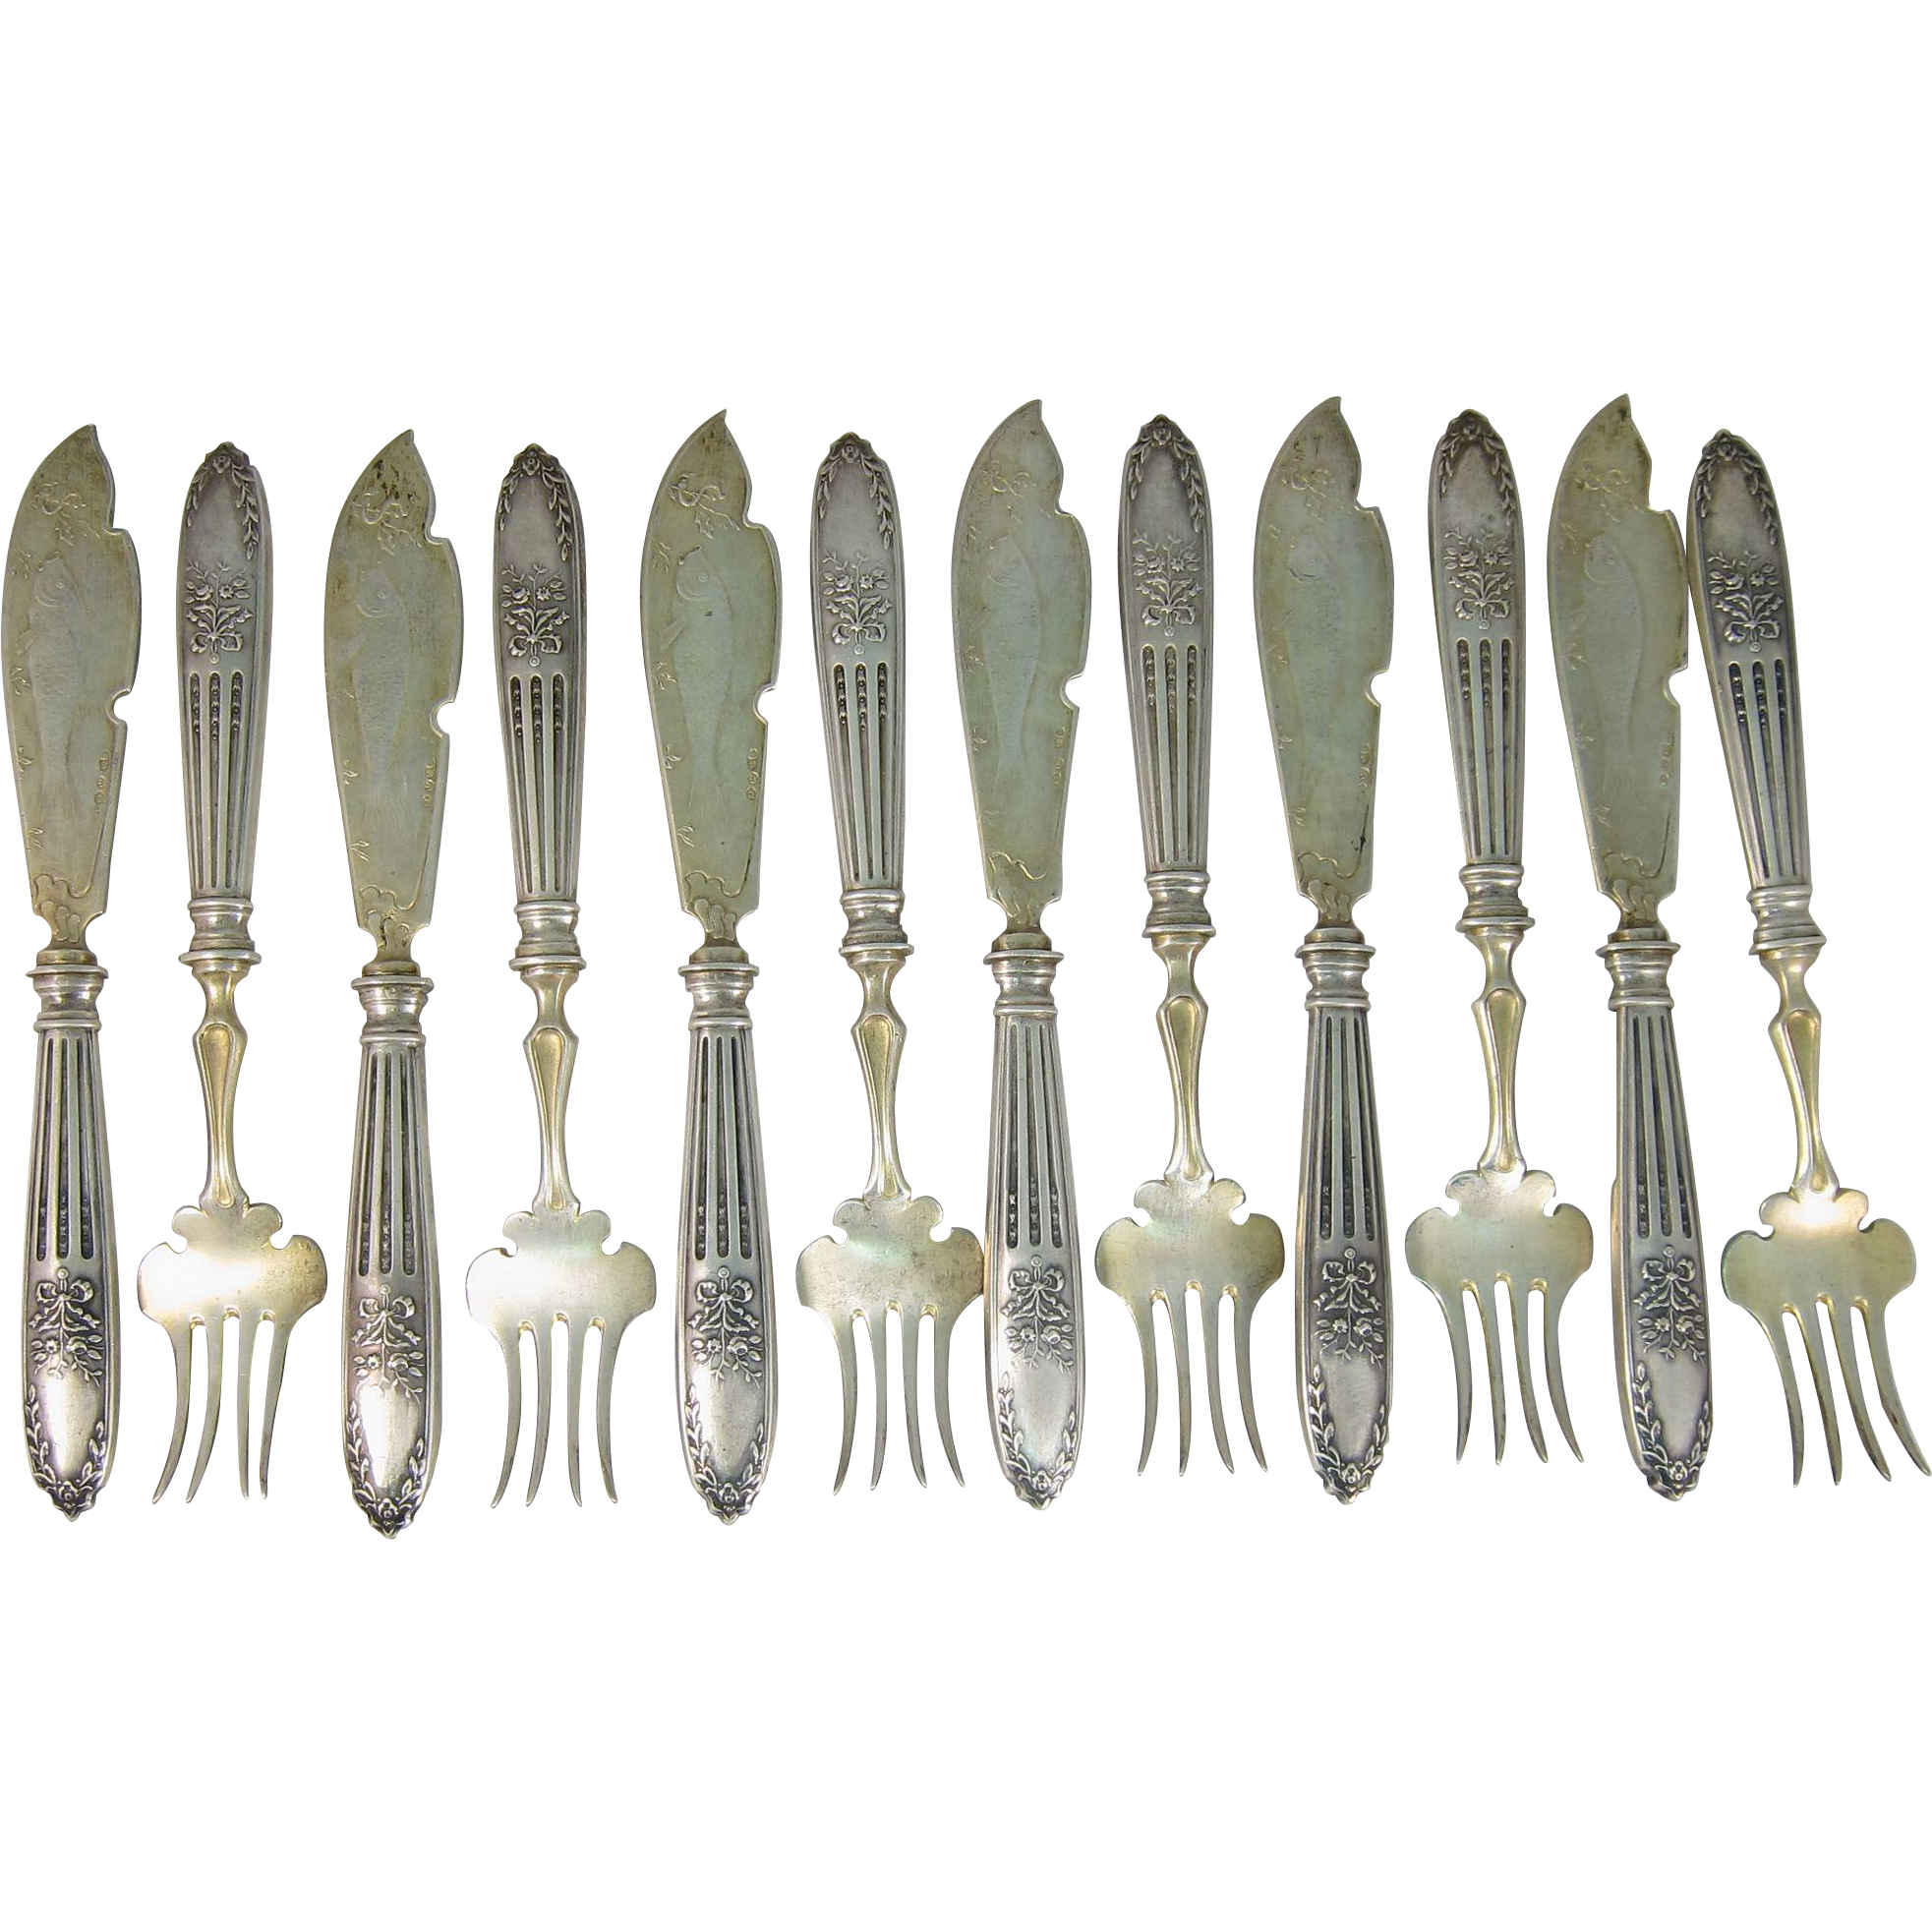 Rare Antique Set of 12 Russian / Polish Solid 84 Silver Fish Knives & Forks Warsaw Poland Circa 1910s